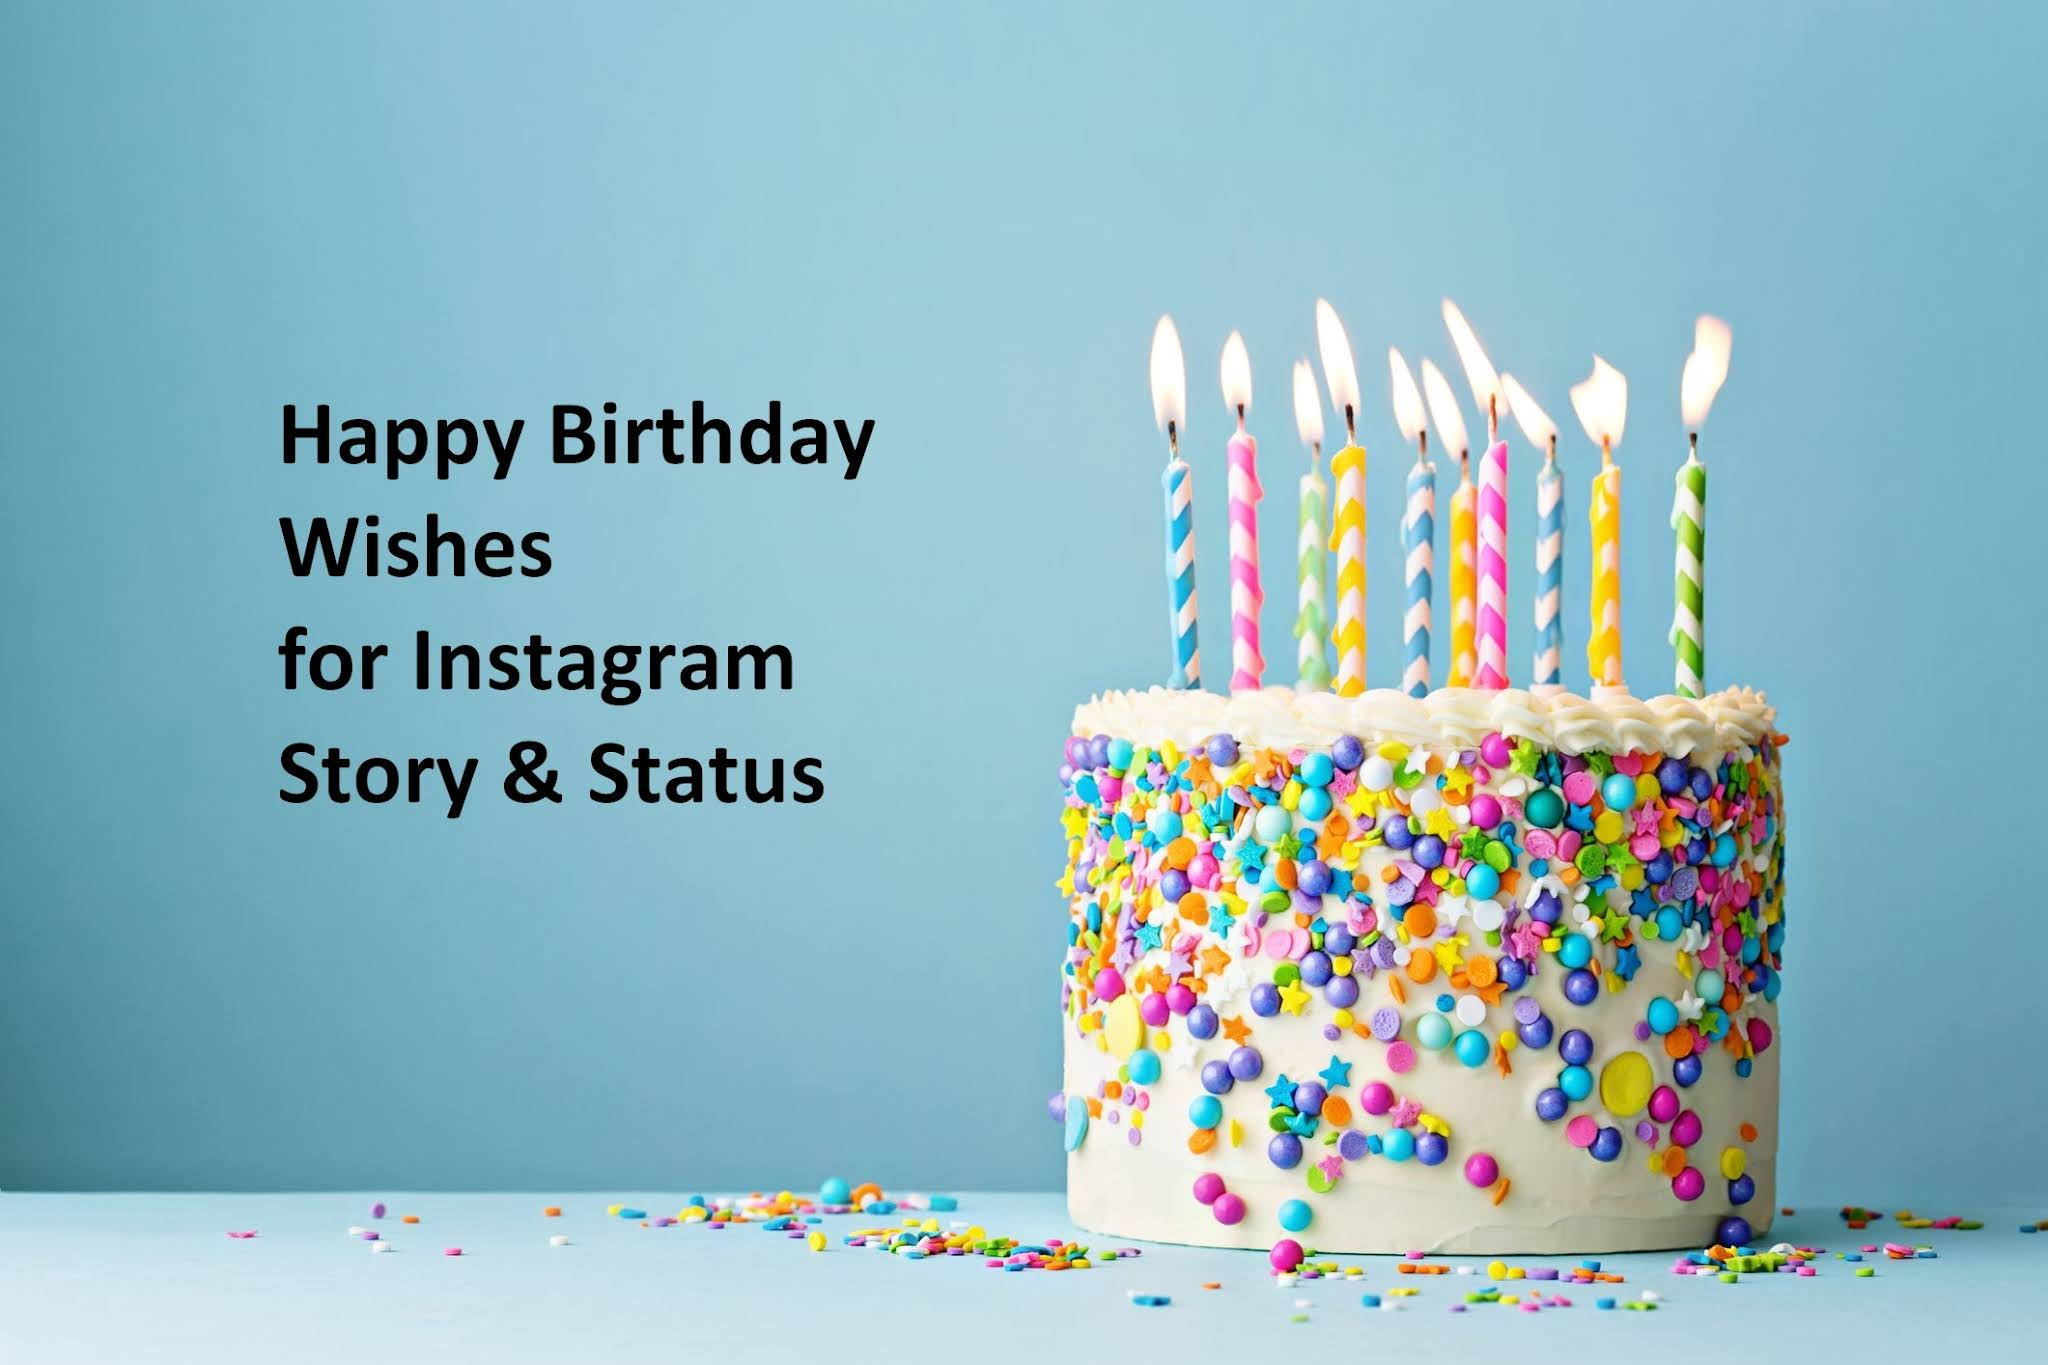 Happy Birthday Wishes for Instagram Story, Status - Best Birthday Quotes for IG